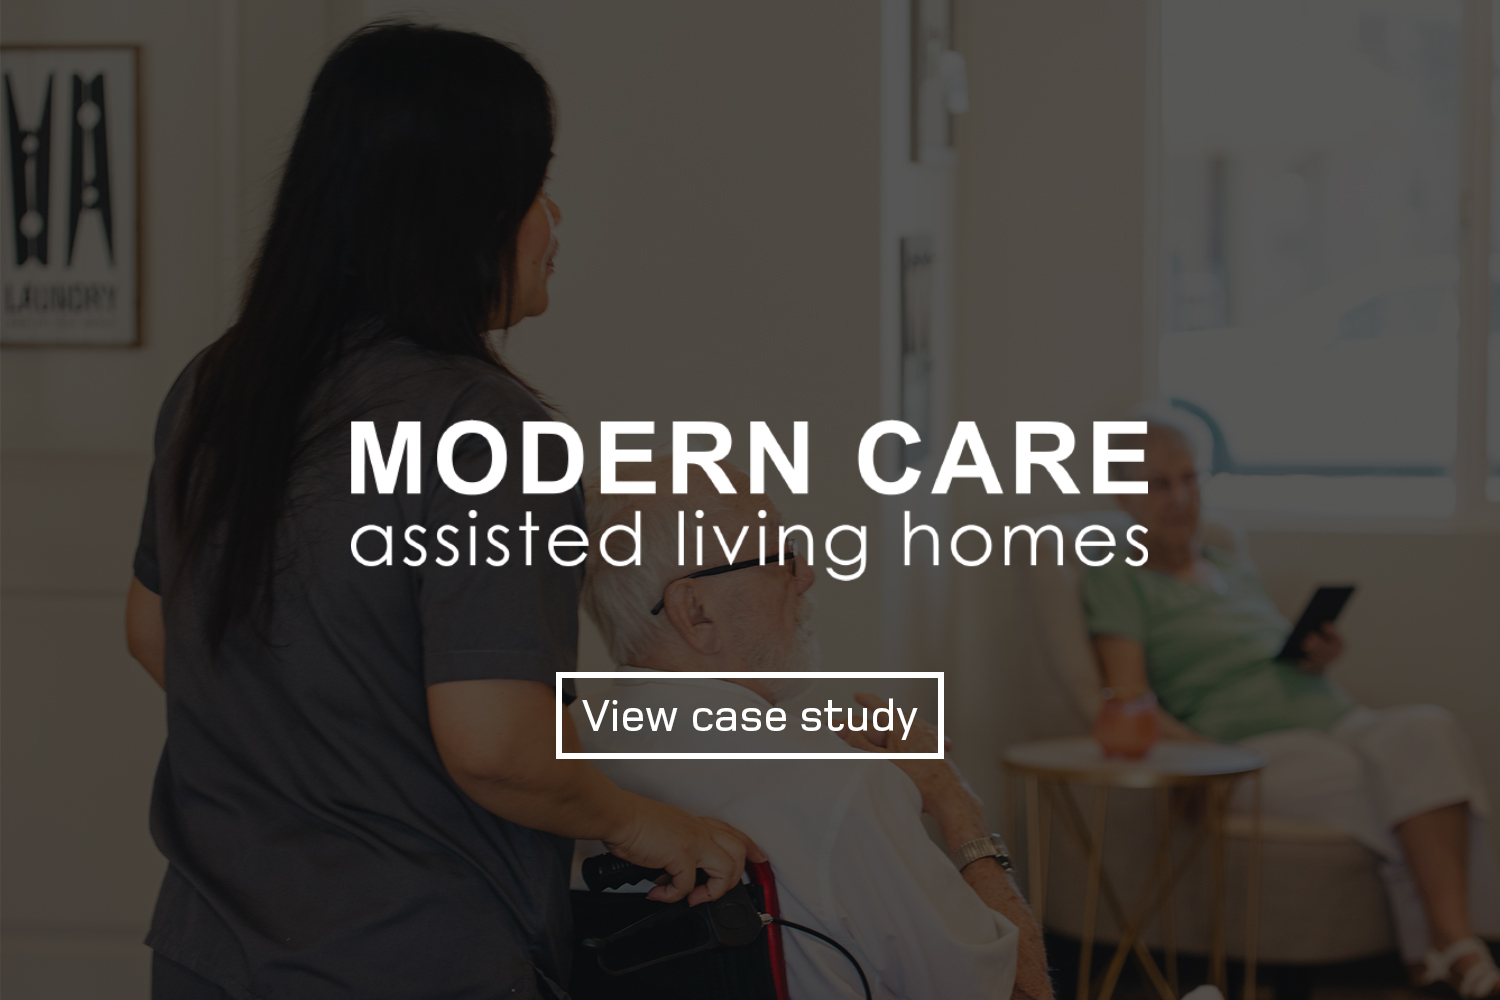 wilcomedia-modern-care-assisted-living-homes-case-study.jpg